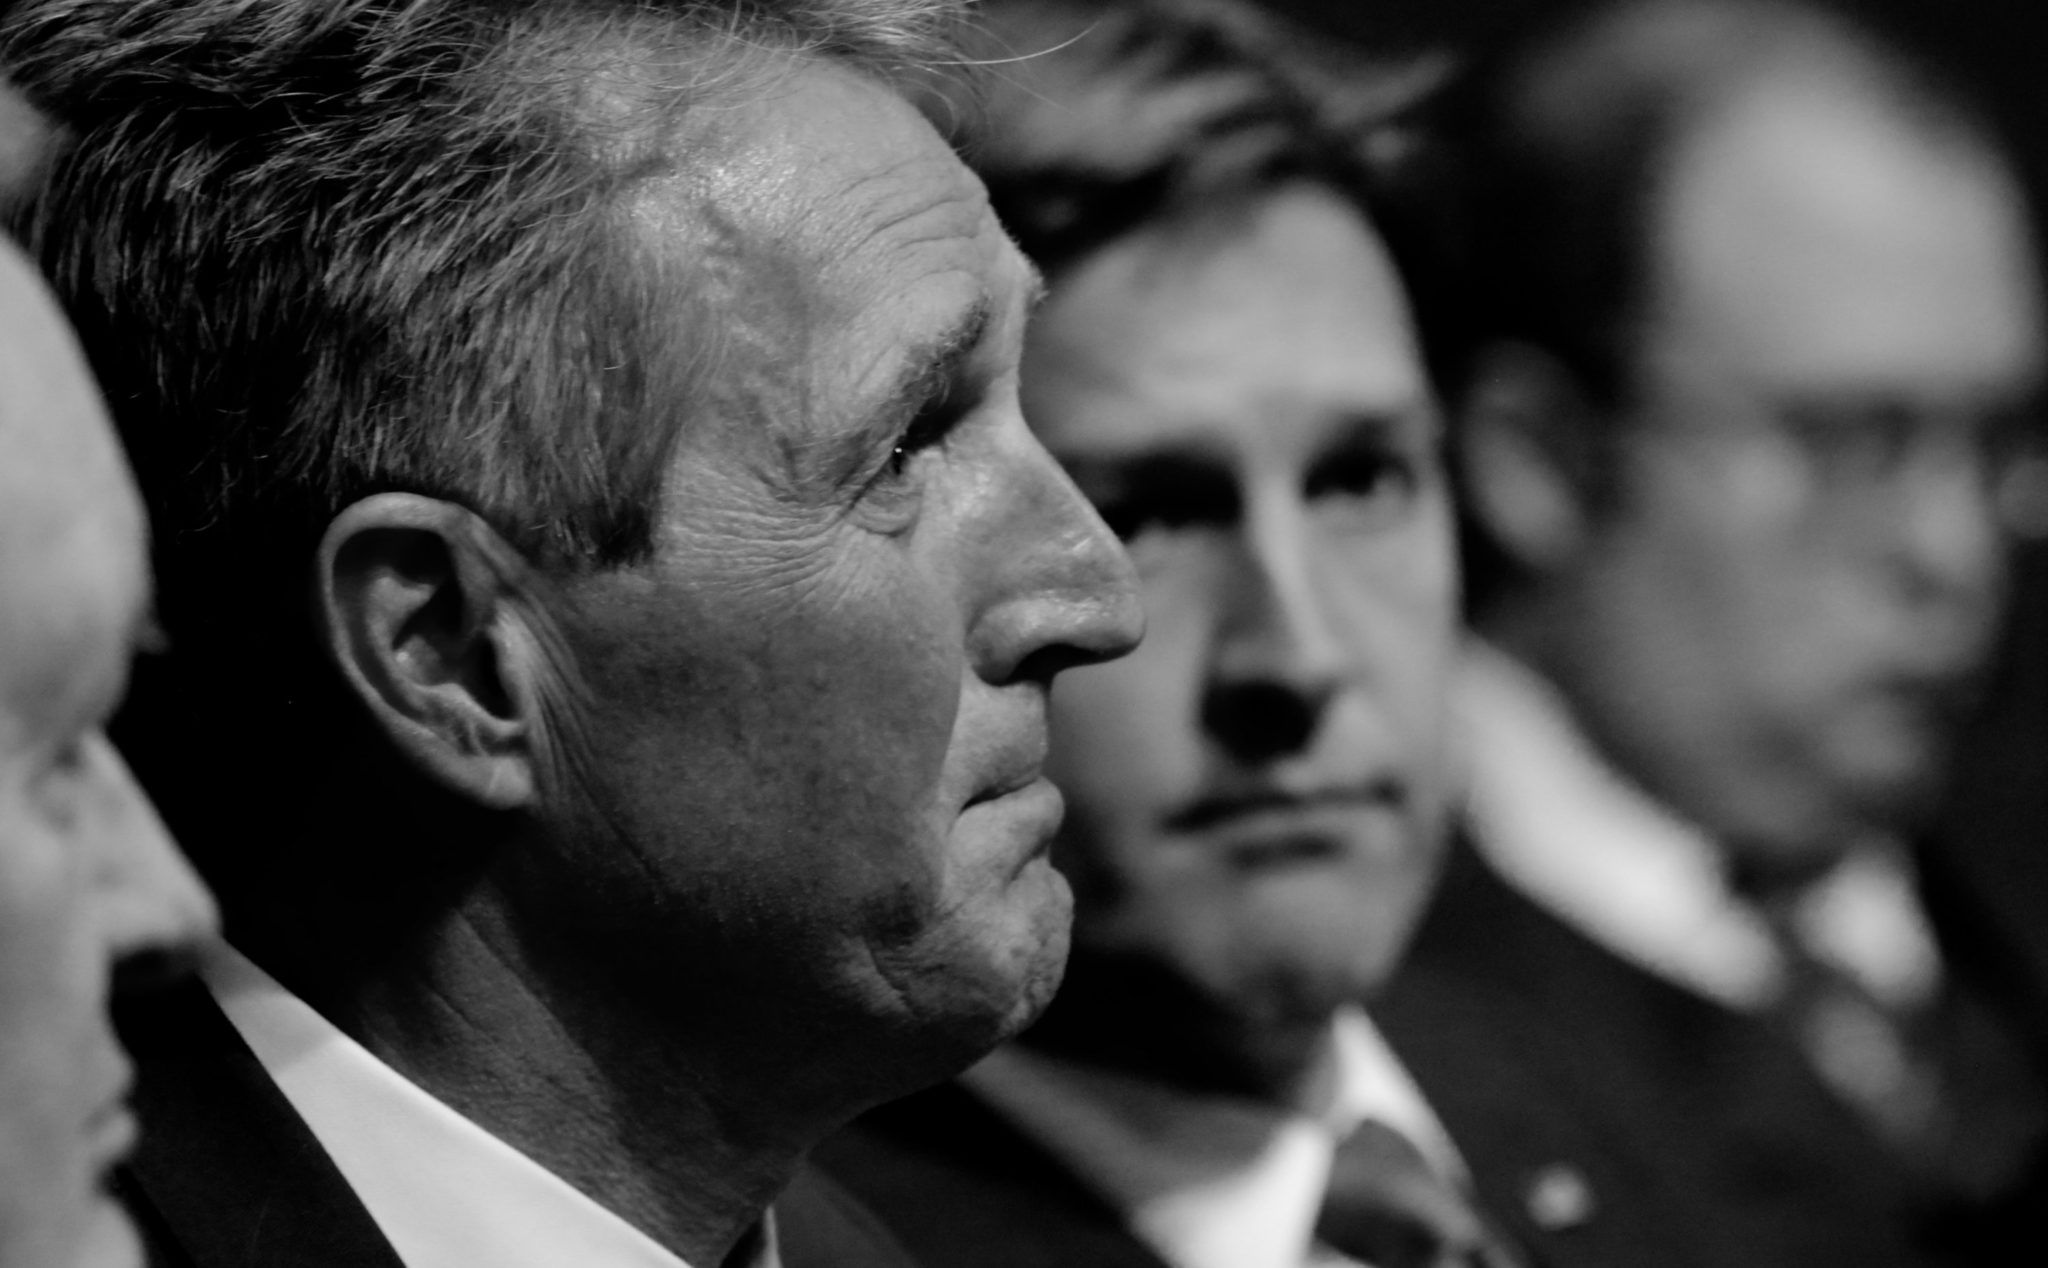 Jeff Flake's Big Moment, in Black and White